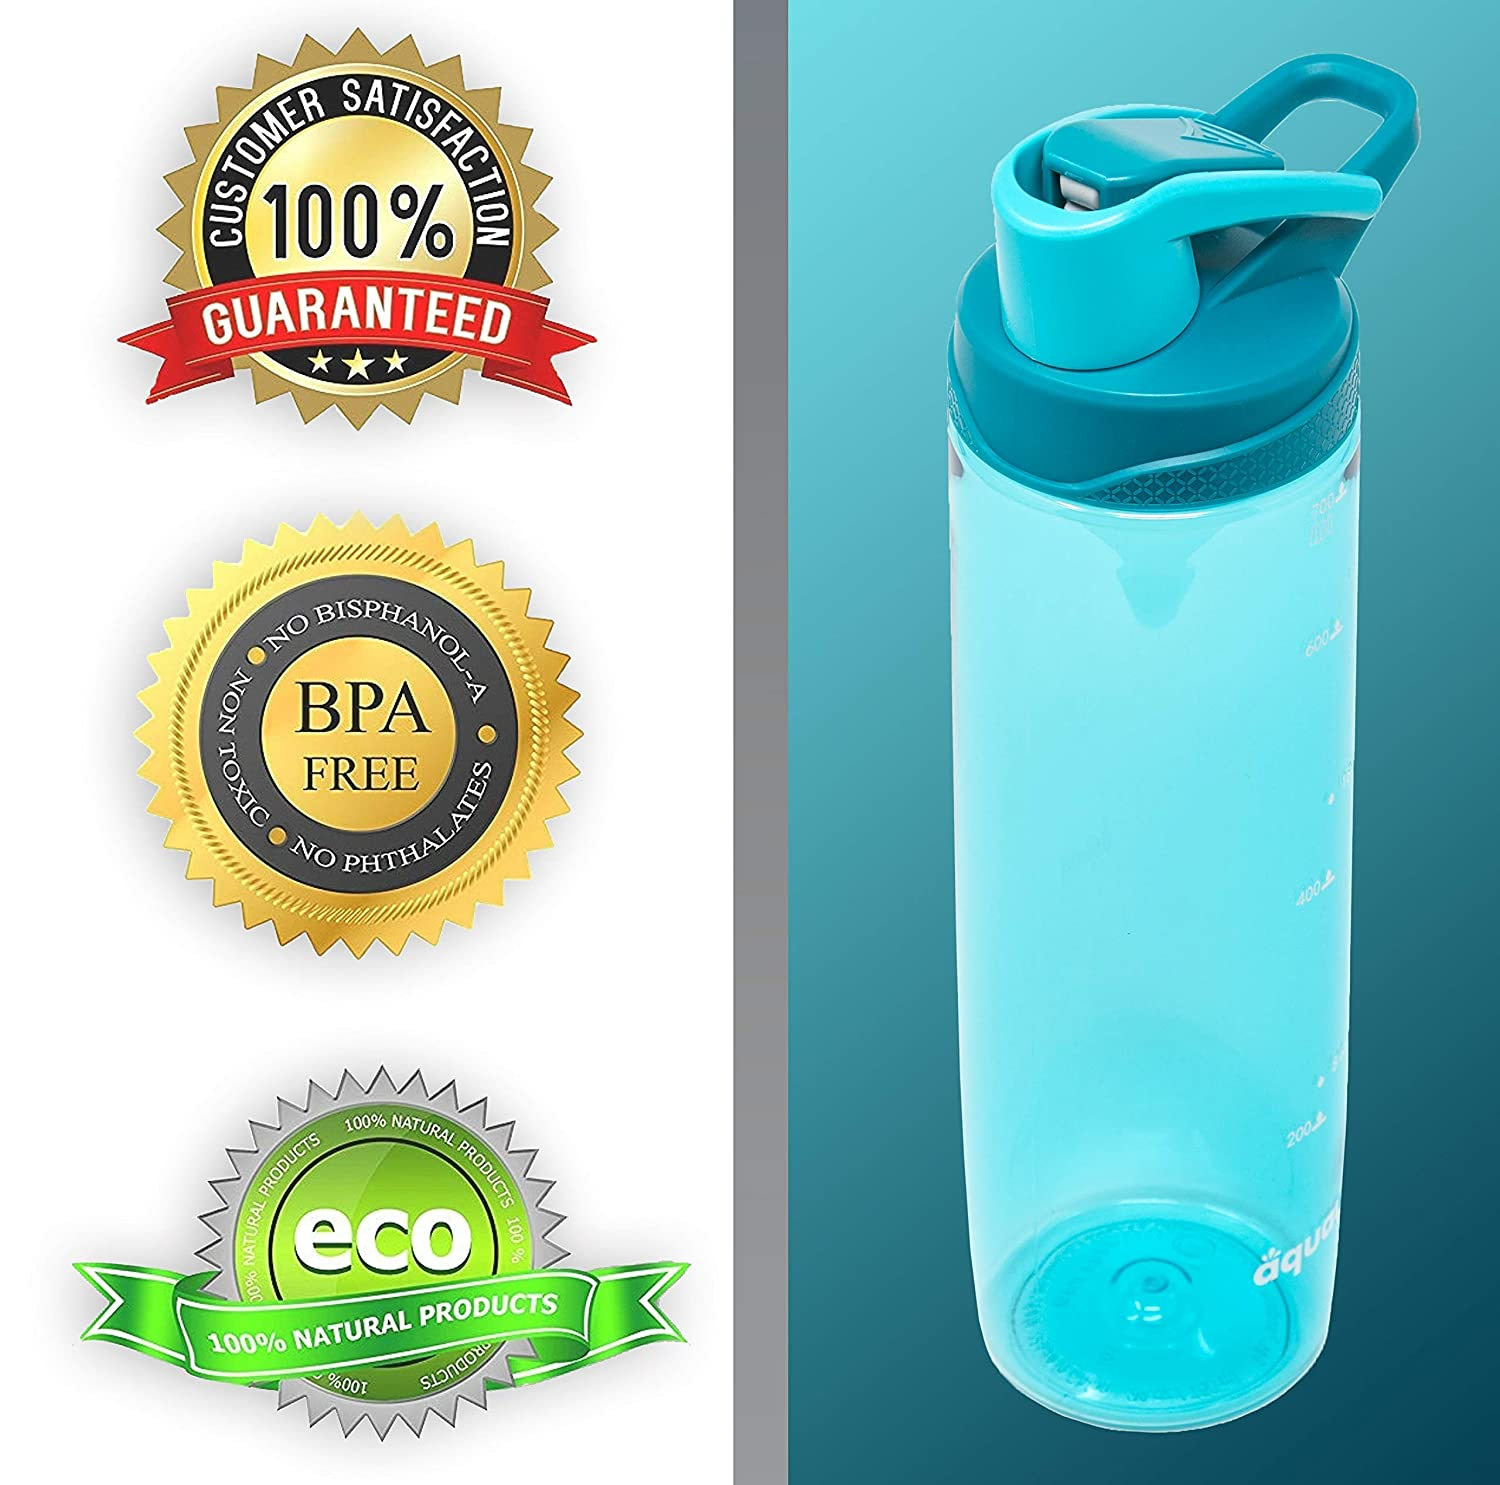 Protein Shaker Aquaa Life Tritan 24oz Non-Toxic BPA-Free Wide Mouth Leak-Proof and Spill-Proof Sports Water Bottle Flip Top Outdoors for Gym Yoga Shaker Bottle Camping Easy to Clean